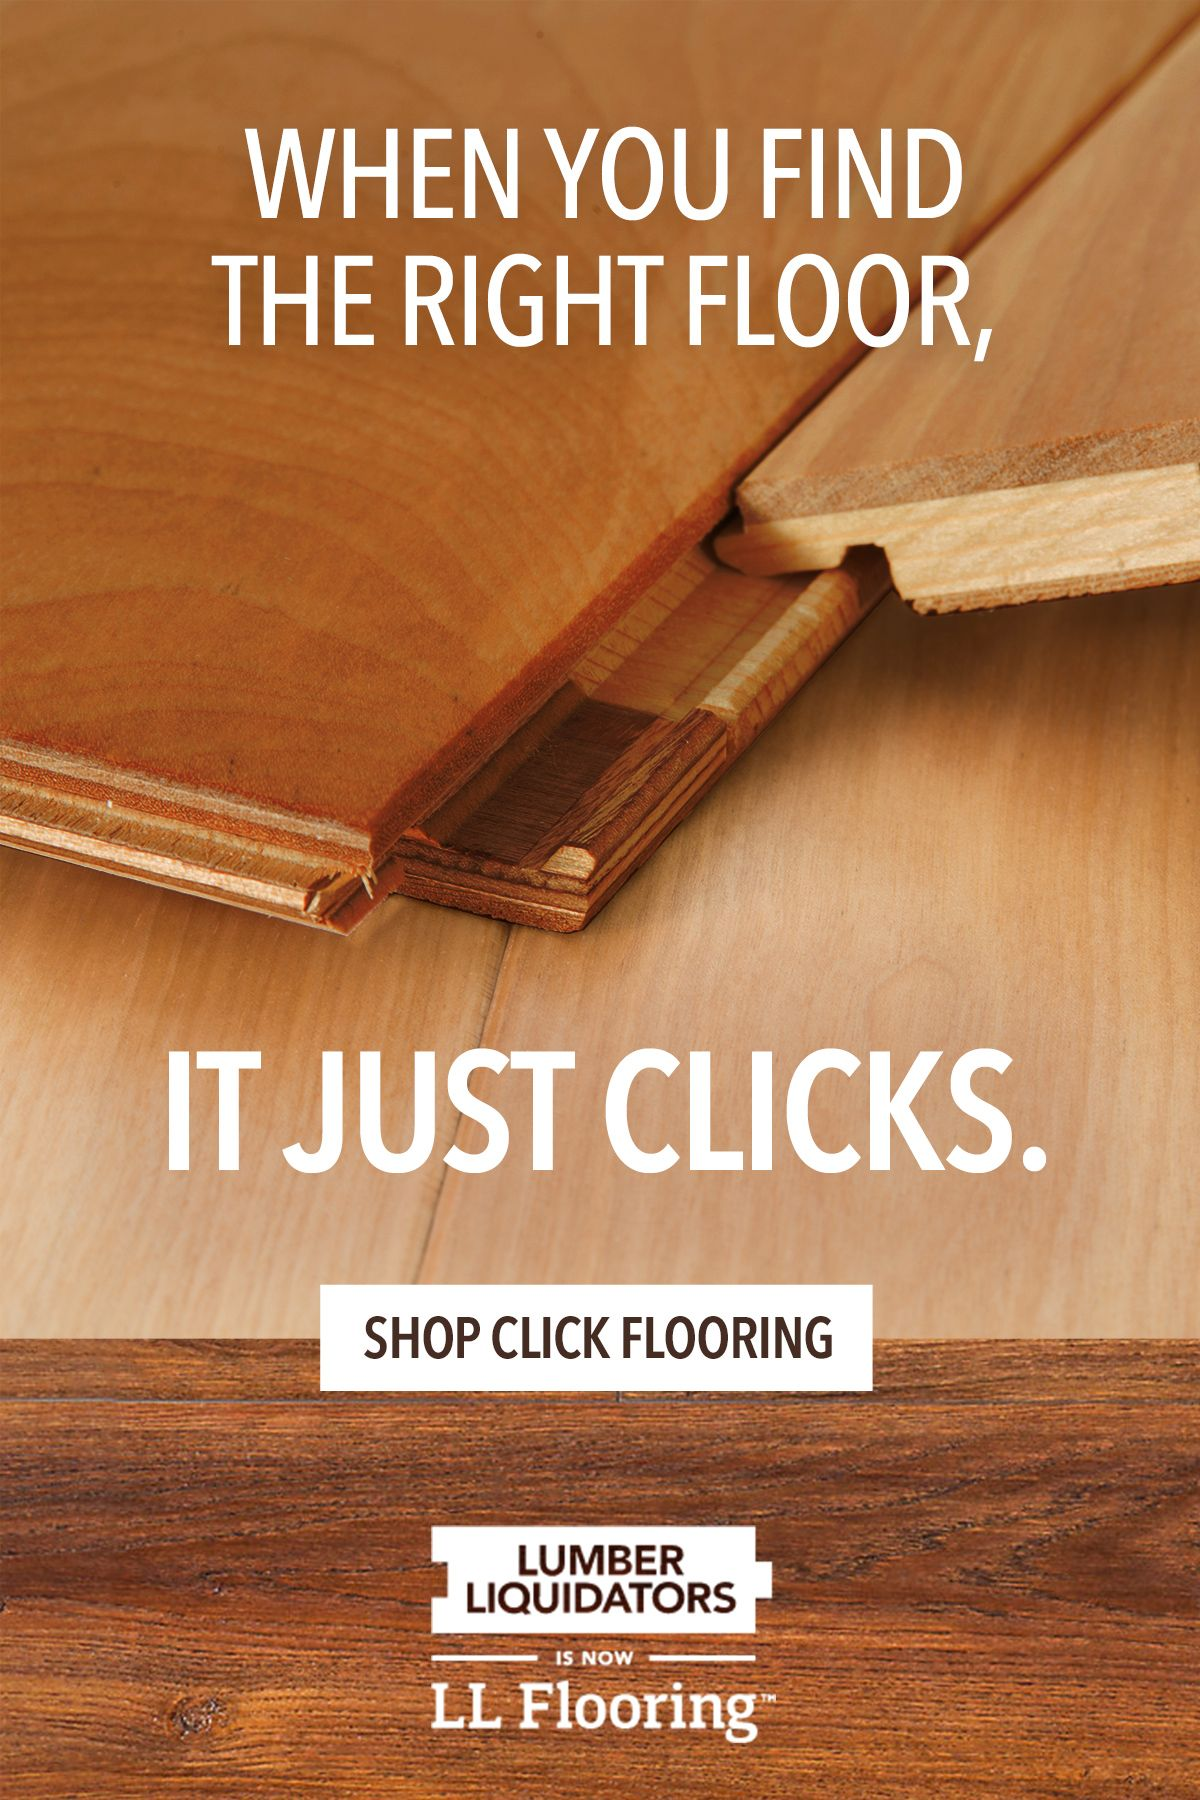 Visit Ll Flooring To Find Floors That Click For You The Biggest Advantage Of Click Flooring Options Is Their Conv In 2020 Click Flooring Lumber Liquidators Flooring